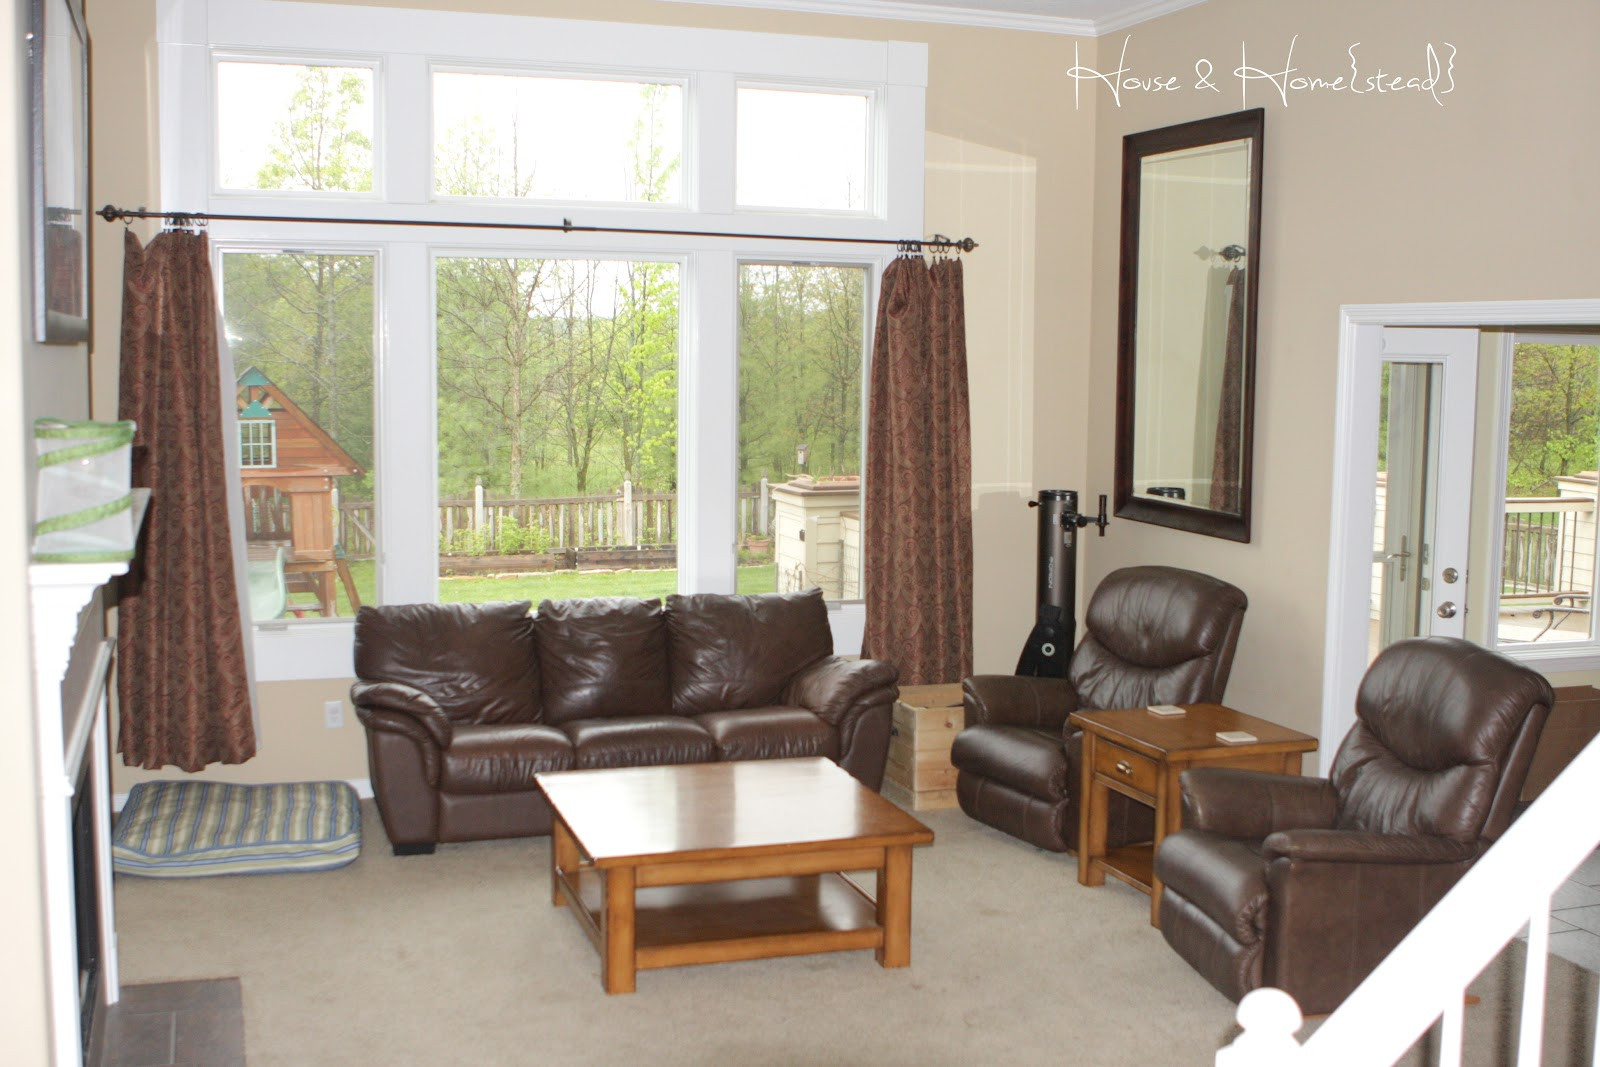 Best ideas about Family Room Couches . Save or Pin Family Room Furniture Layout Ideas Now.